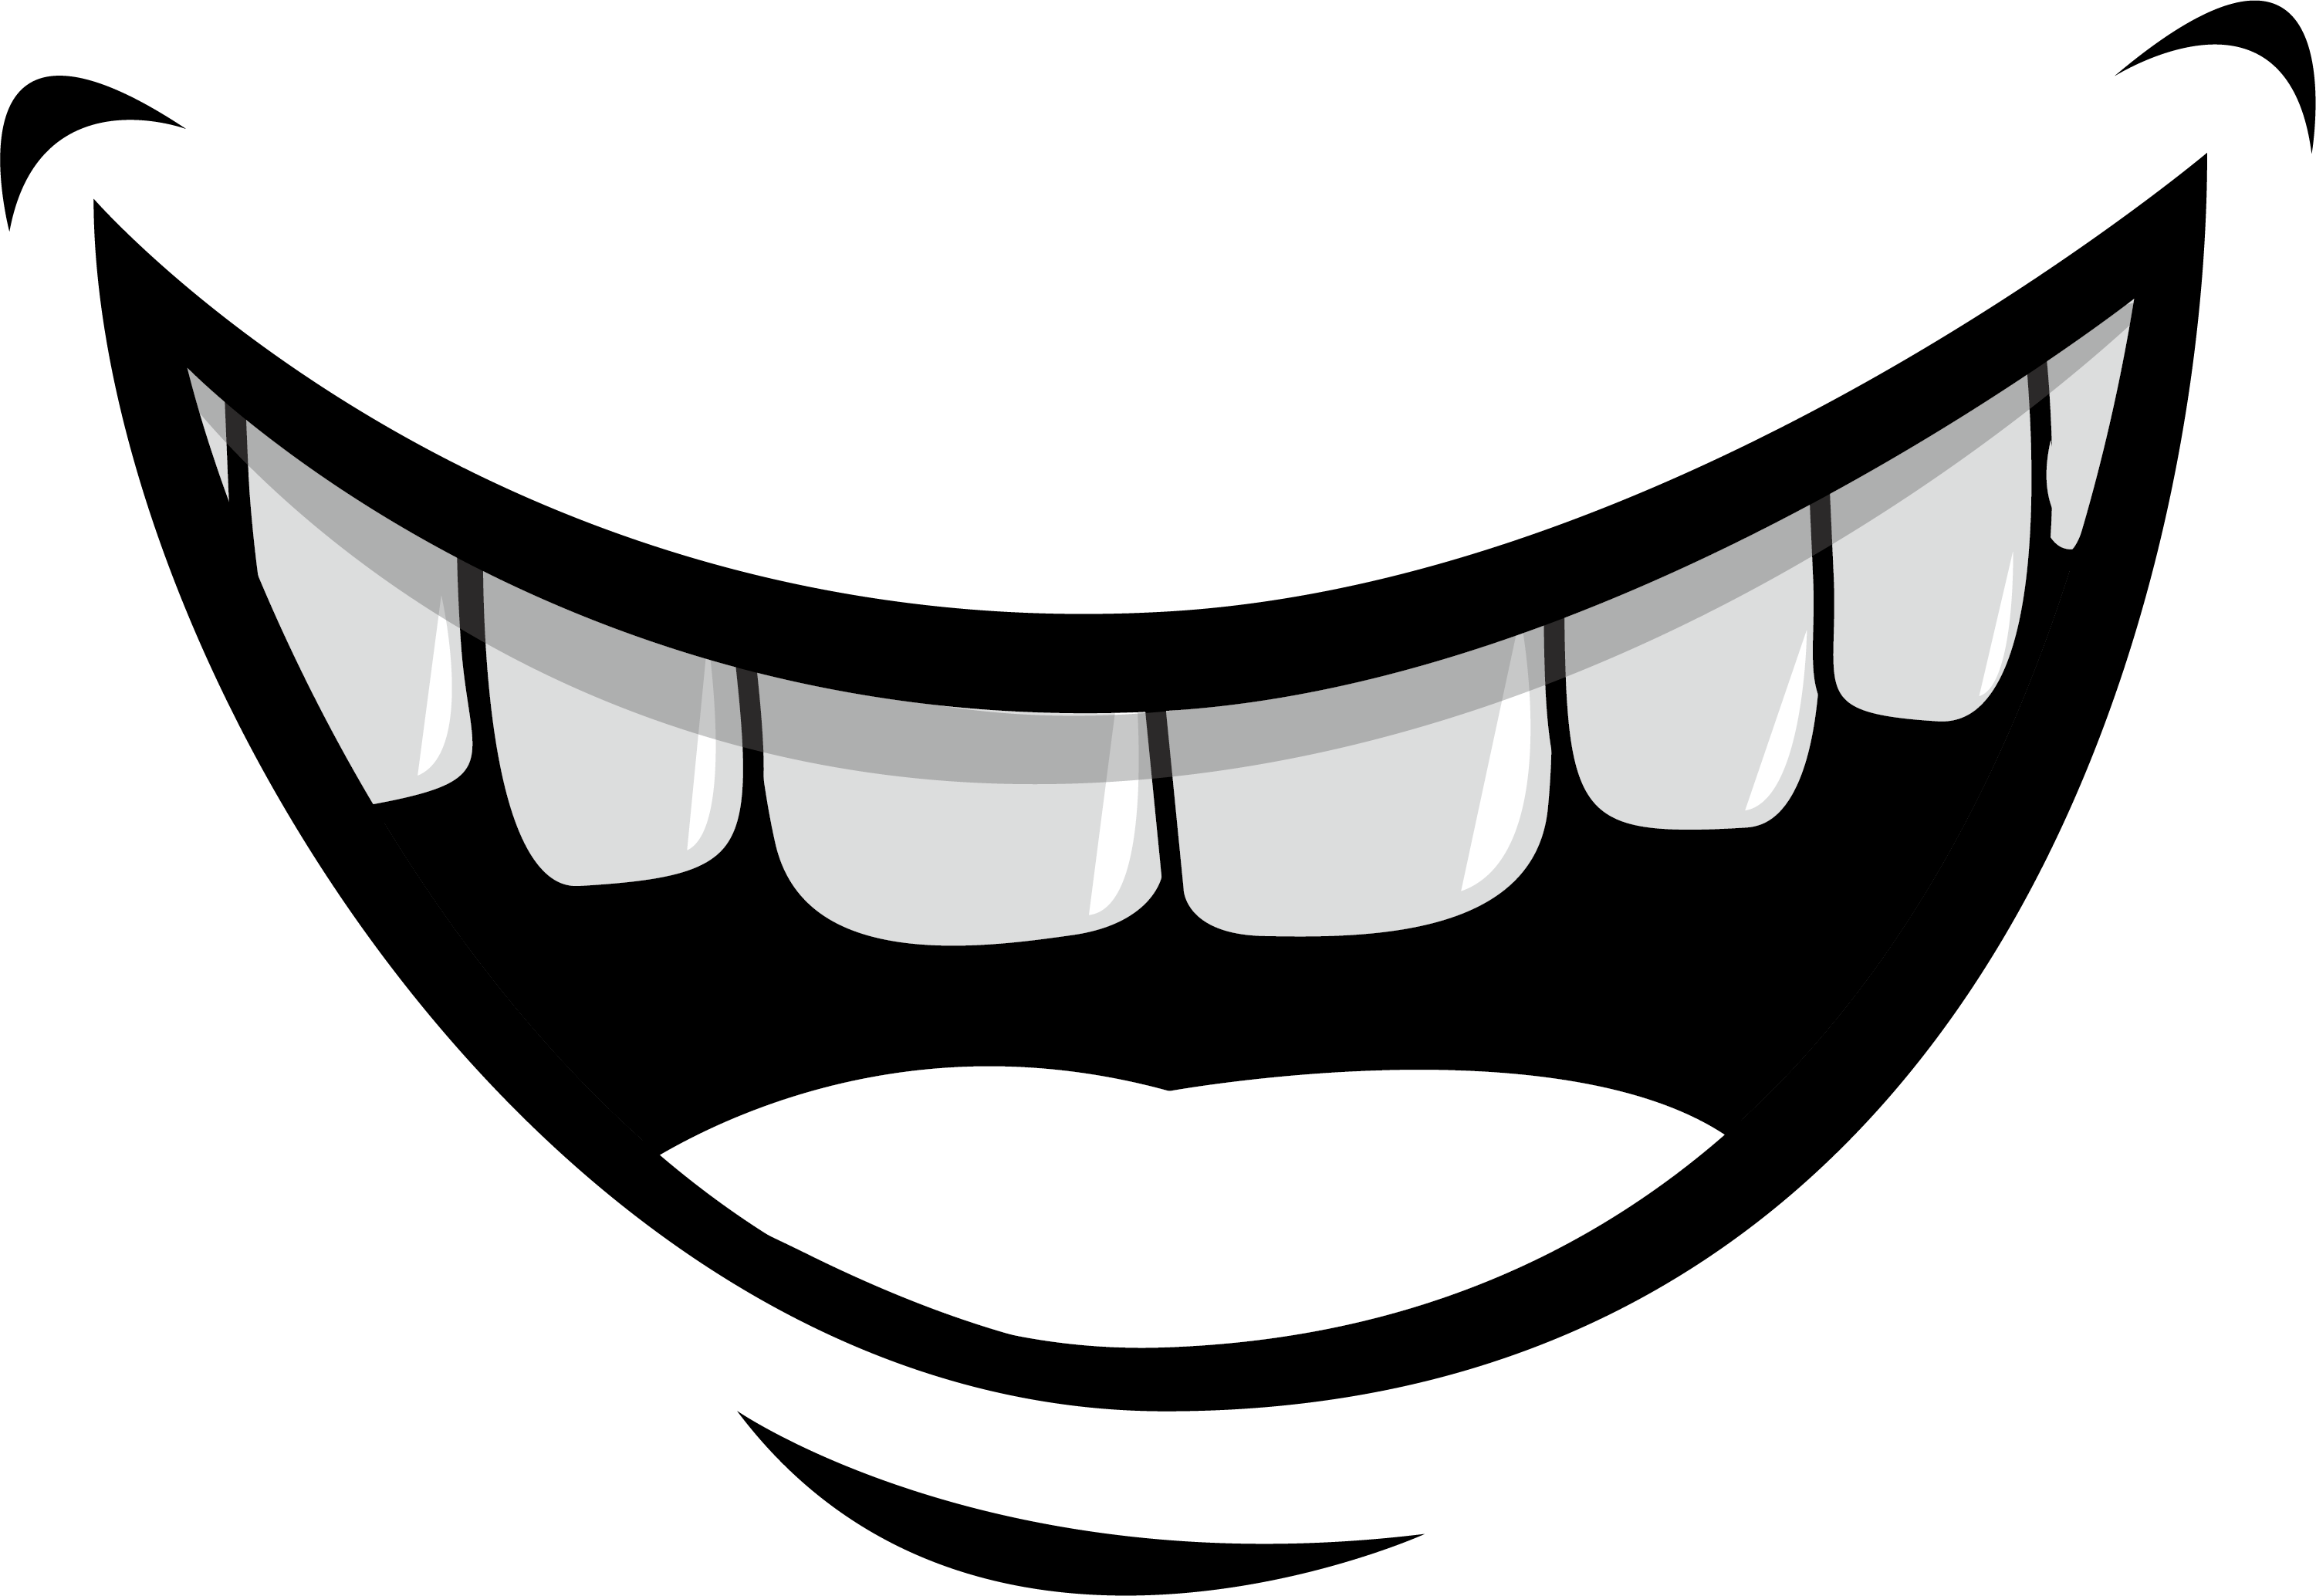 Smiling teeth png. Mouth lip tooth illustration